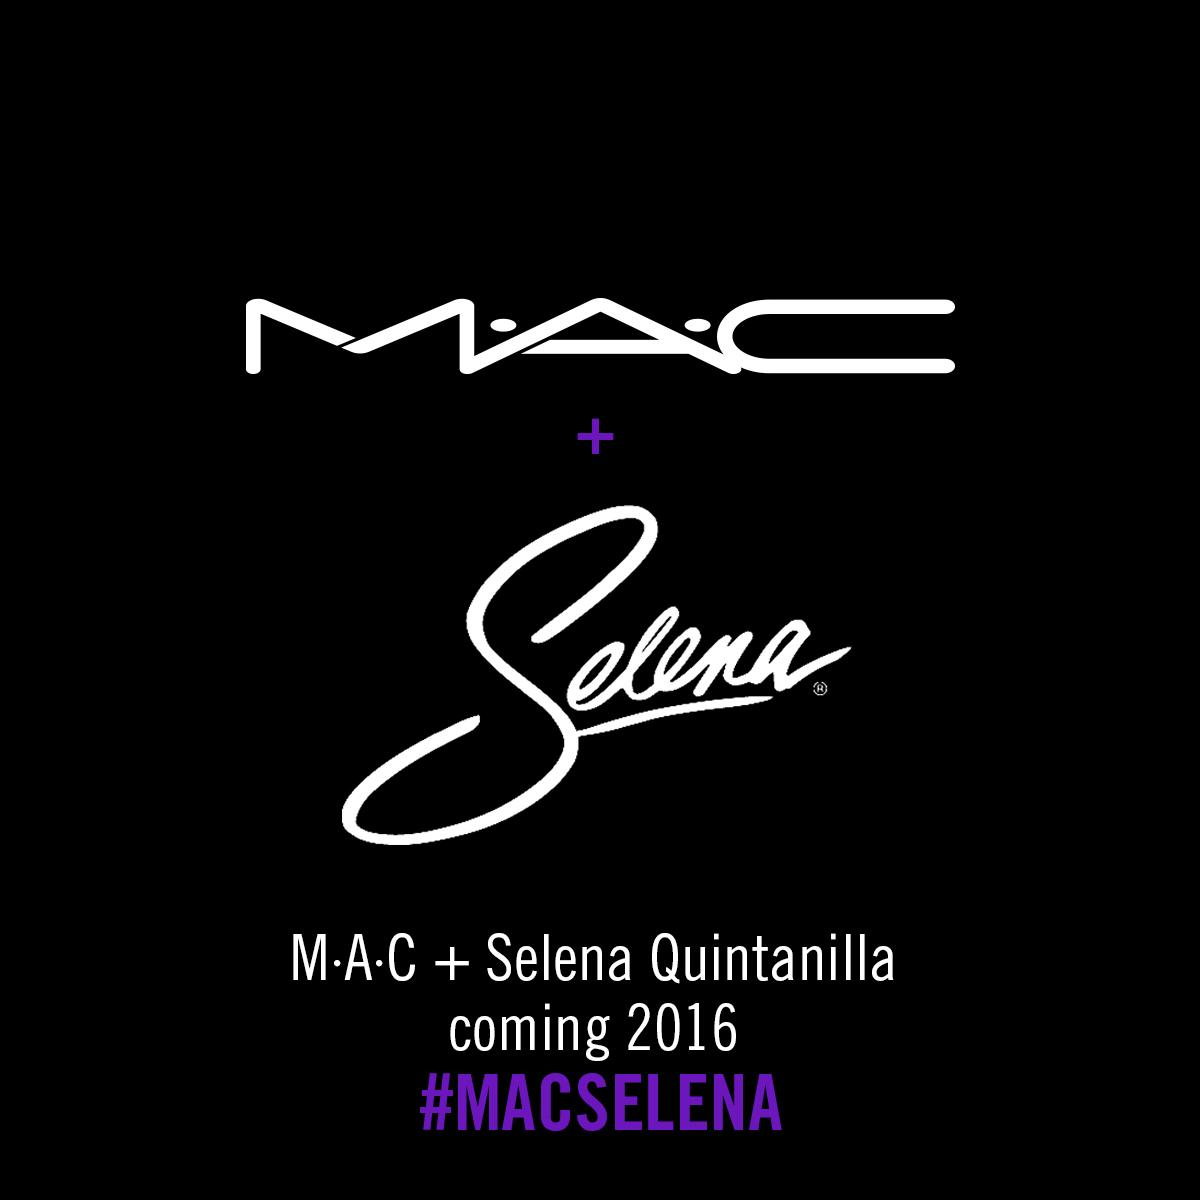 Amazing news! 2016 @MACCosmetics will launch a limited-edition collection in honor of the amazing Selena! #MACSelena http://t.co/UWFMqsjSum